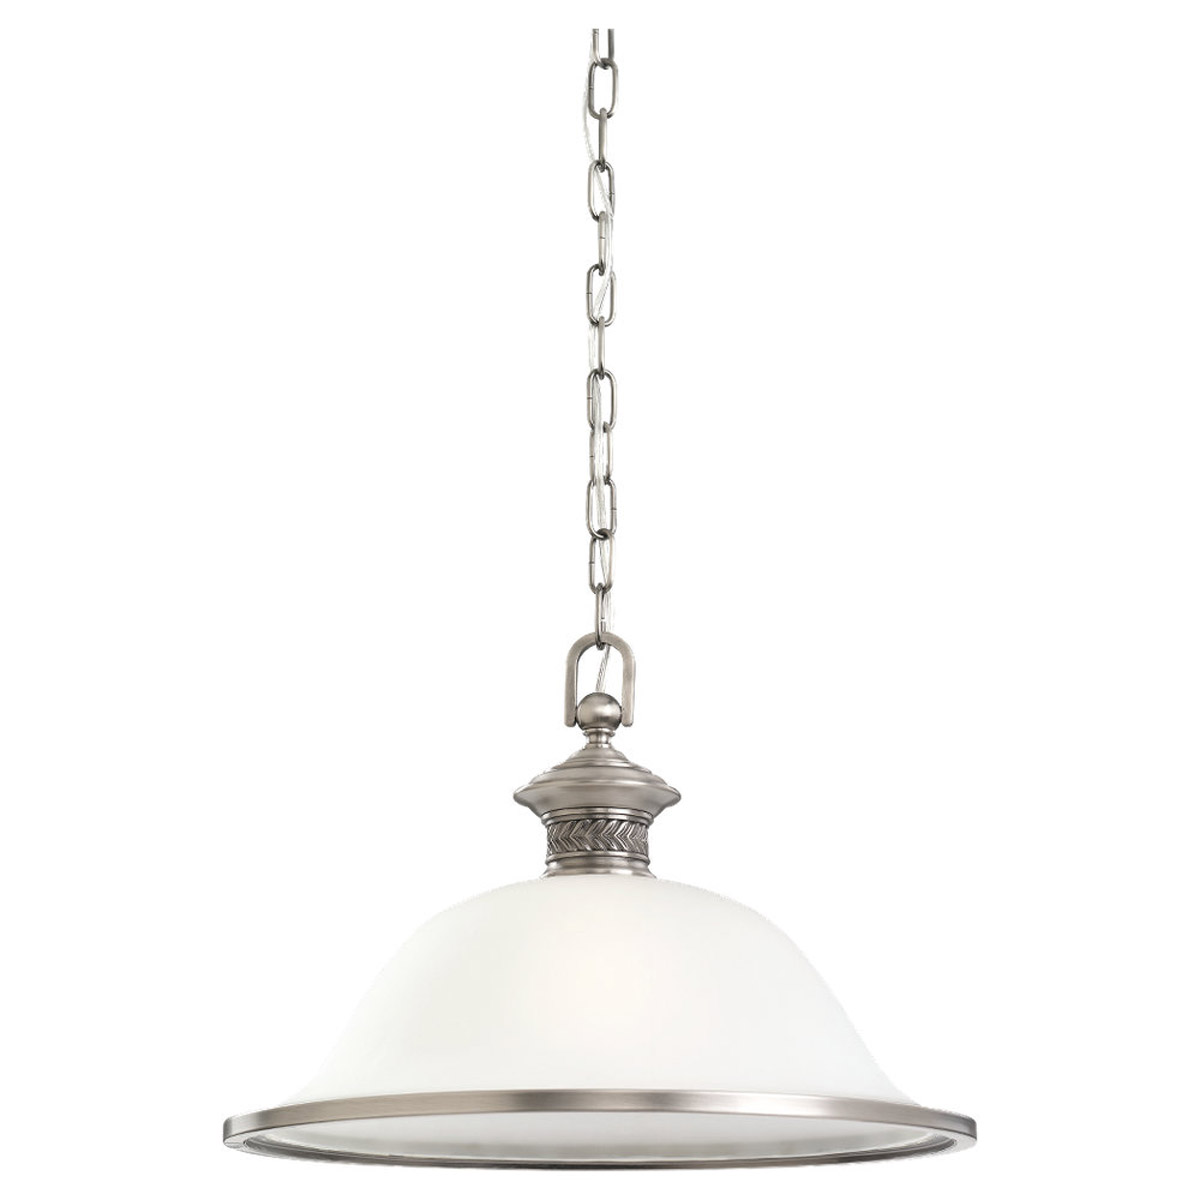 Sea Gull Lighting Laurel Leaf 1 Light Pendant in Antique Brushed Nickel 65350-965